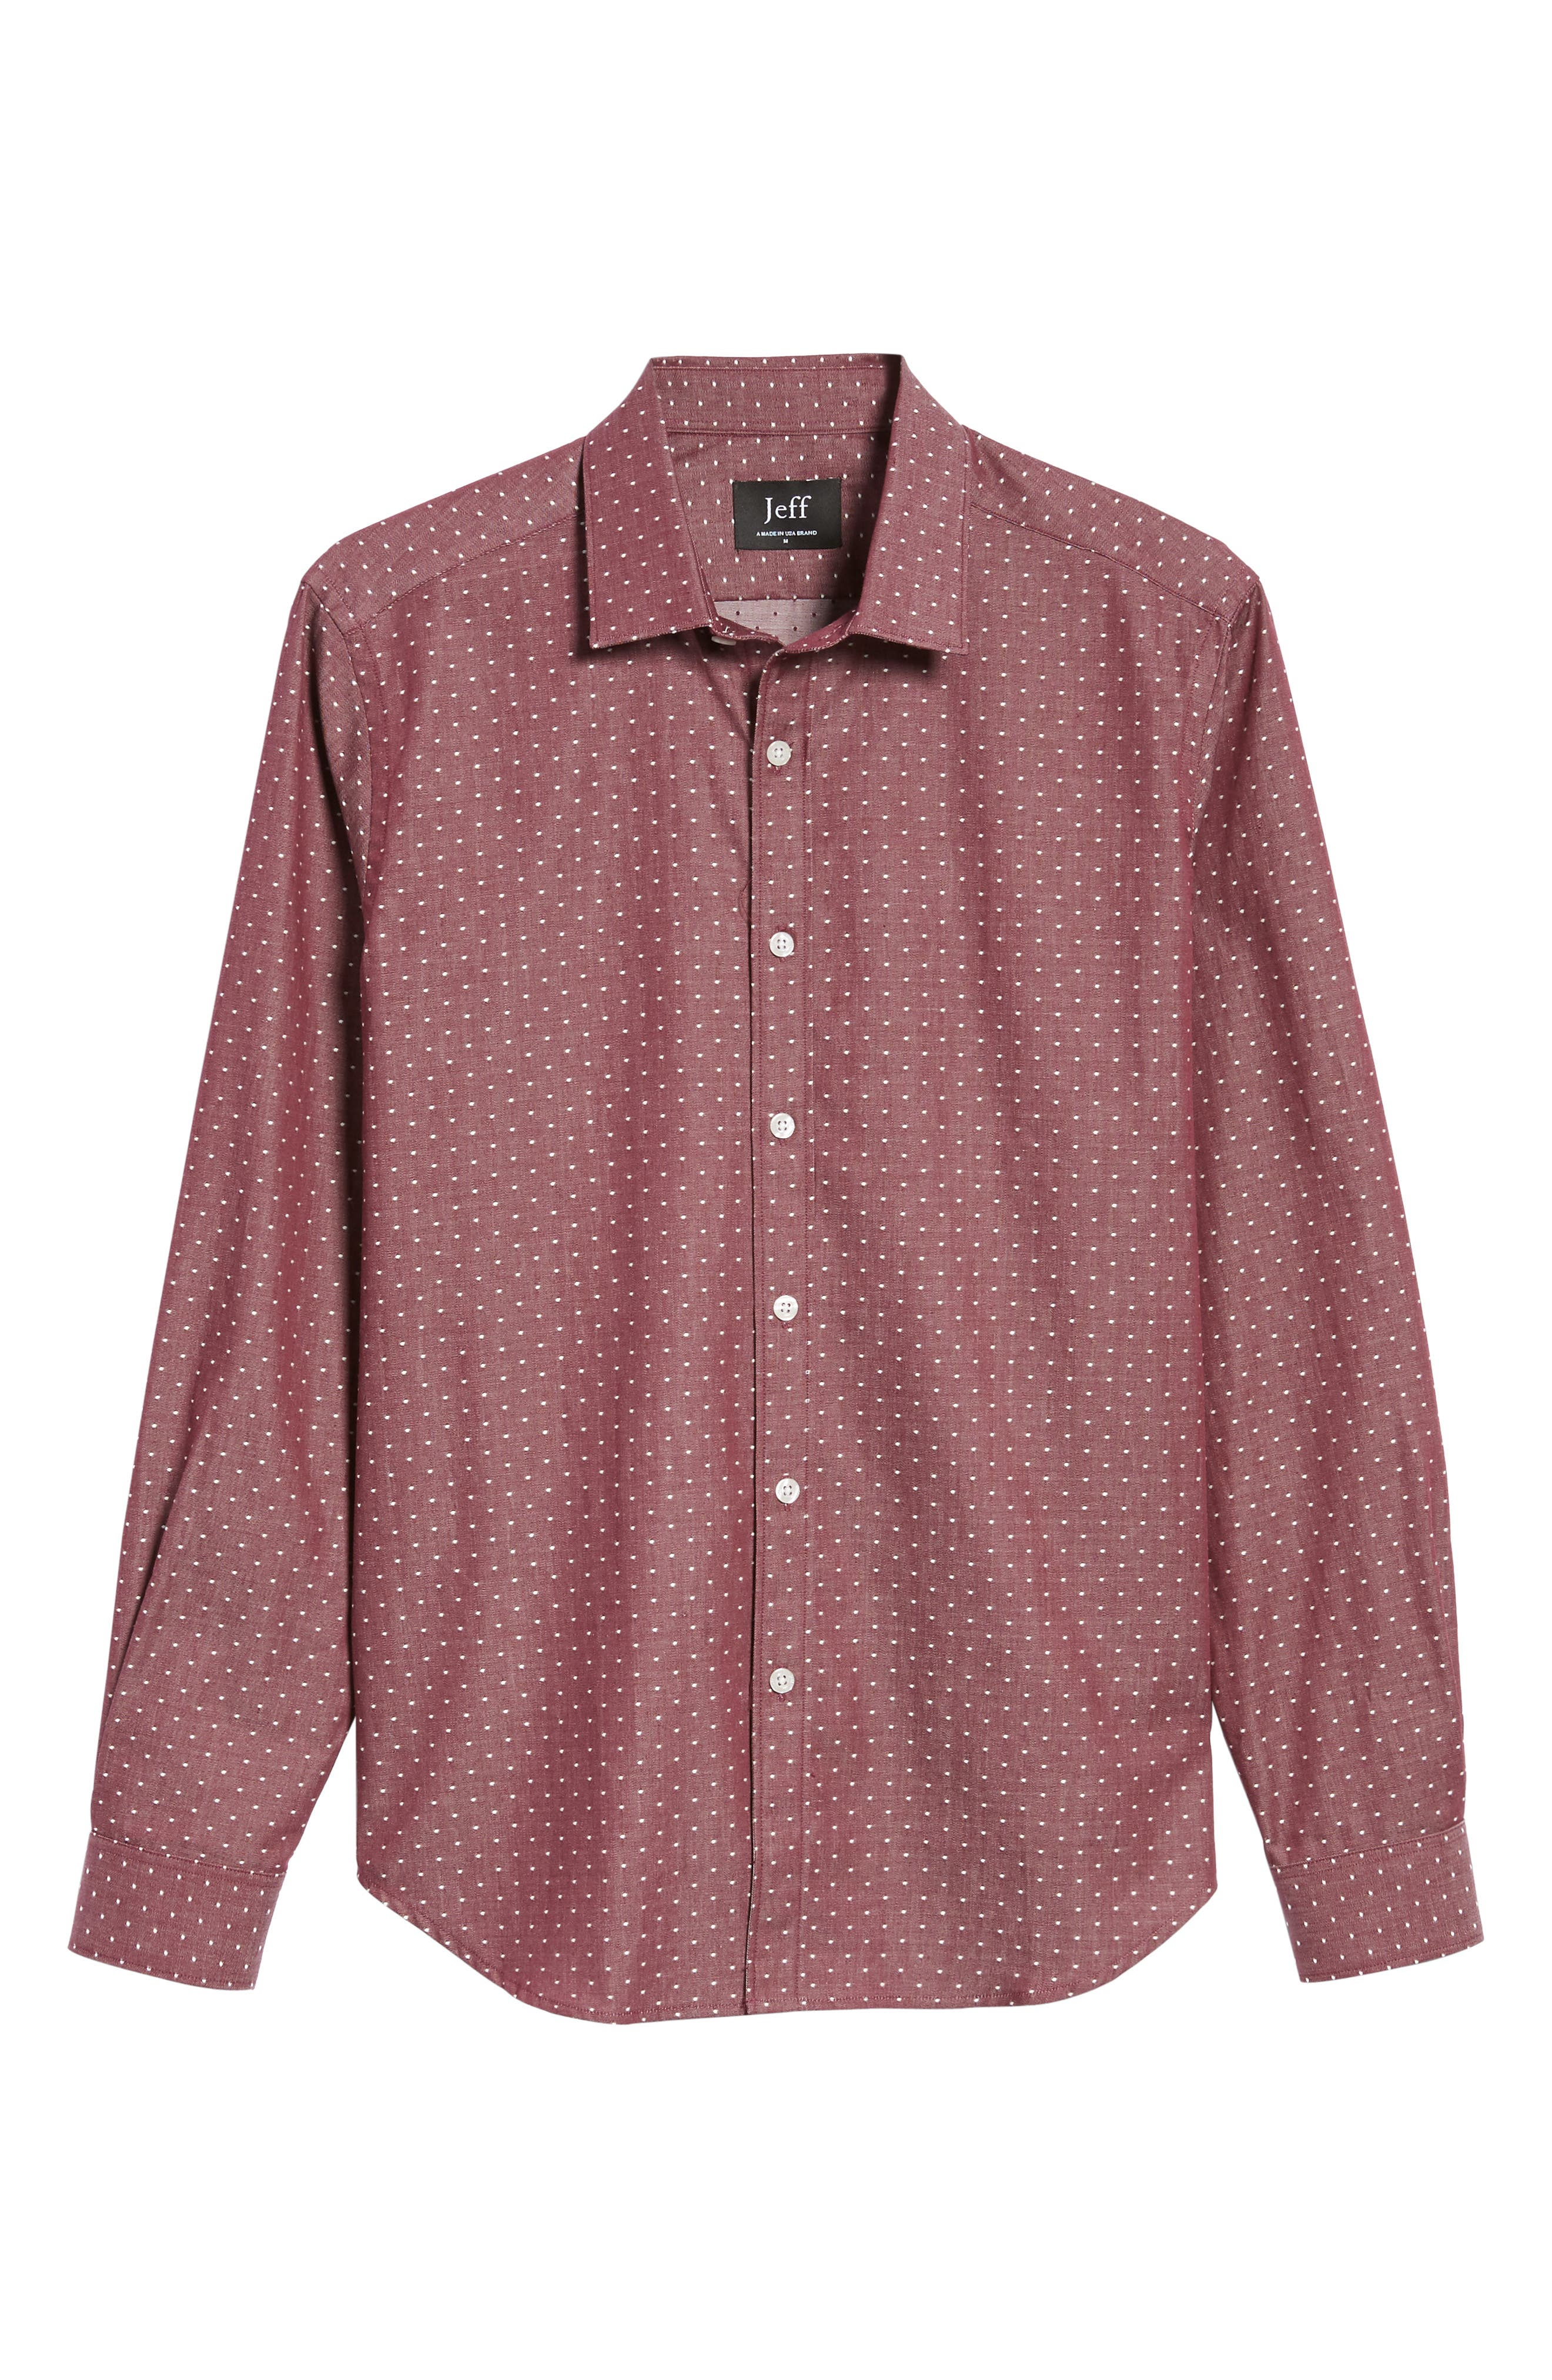 Slim Fit Dot Print Sport Shirt,                             Alternate thumbnail 6, color,                             930